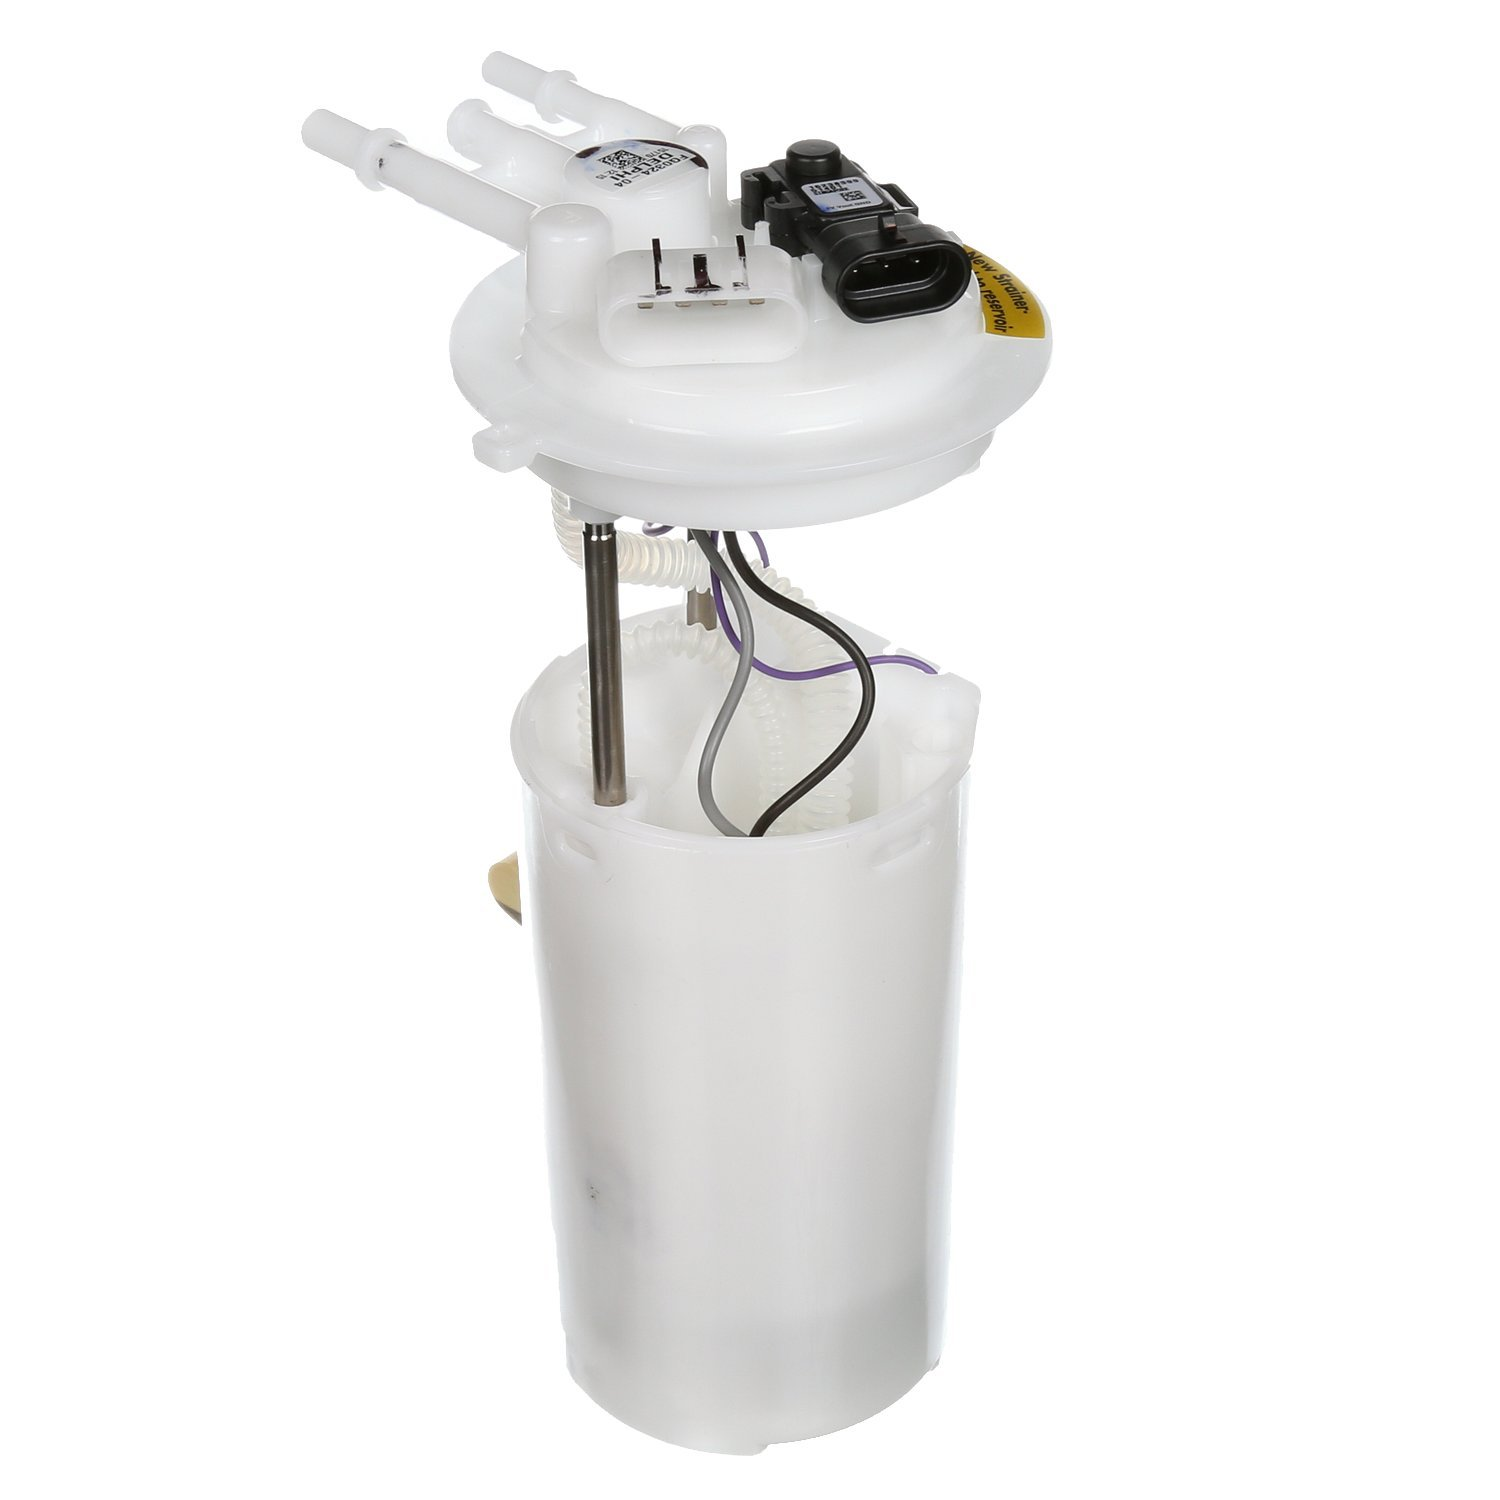 Delphi Fg0324 Fuel Pump Module Automotive 2008 Gmc Yukon Wiring